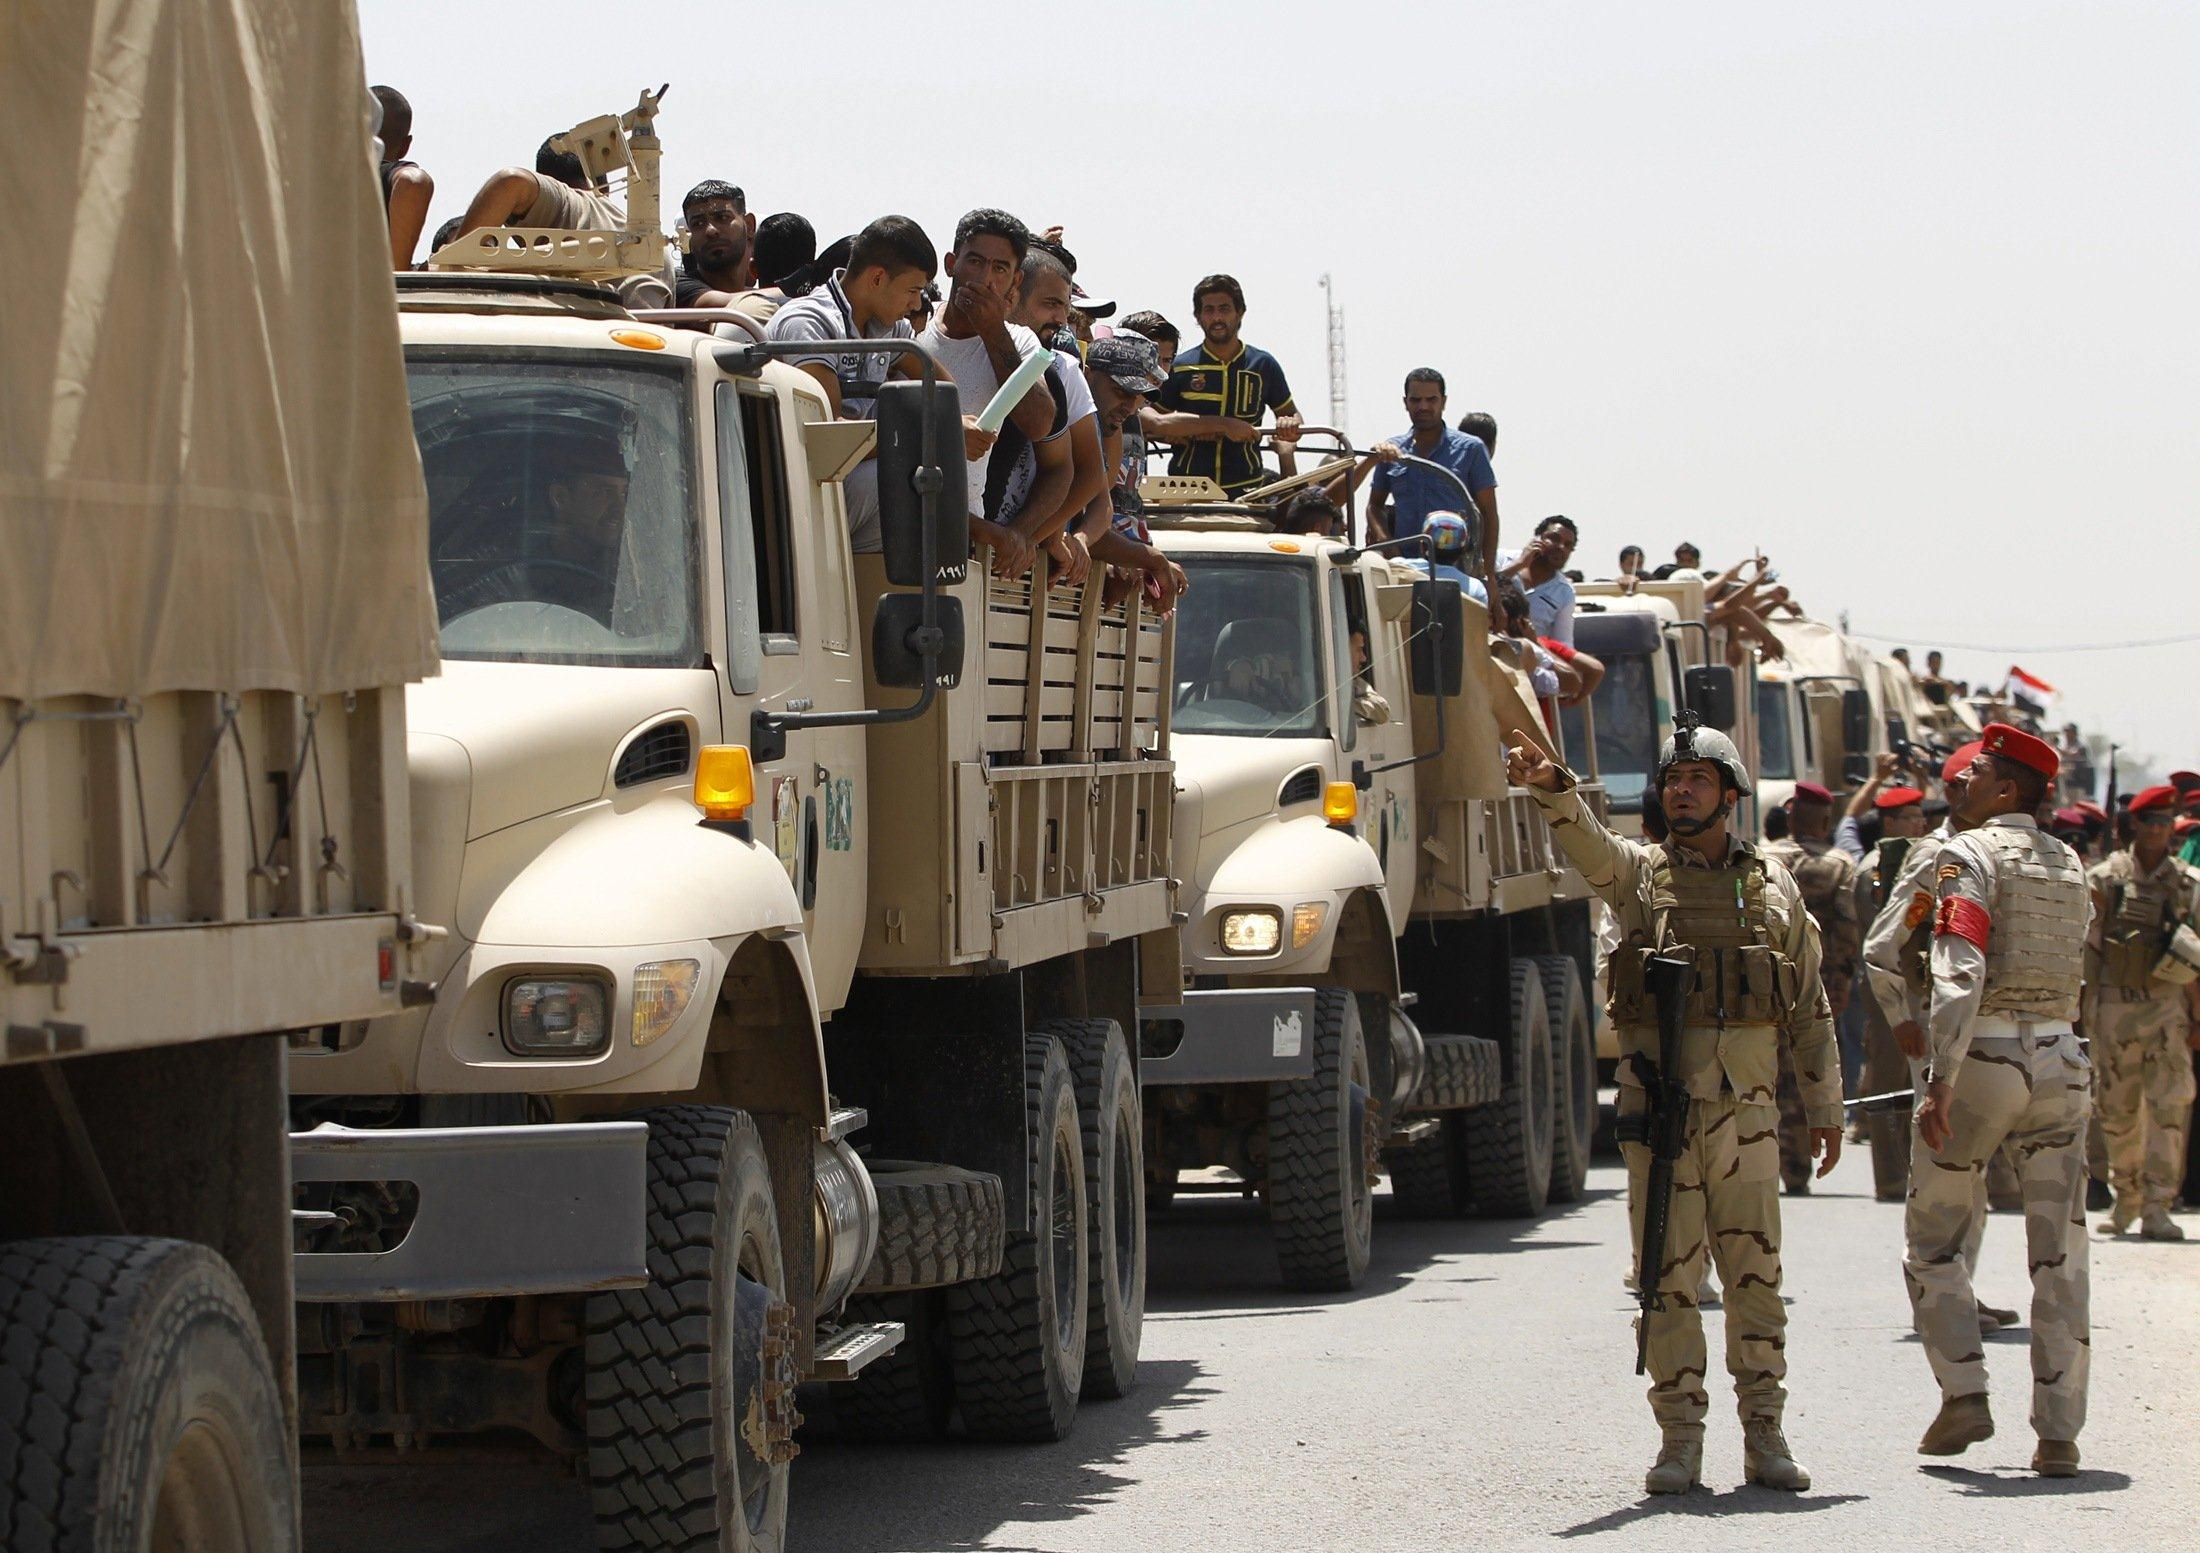 Image: Volunteers who have joined the Iraqi Army to fight against the predominantly Sunni militants travel in army trucks in Baghdad